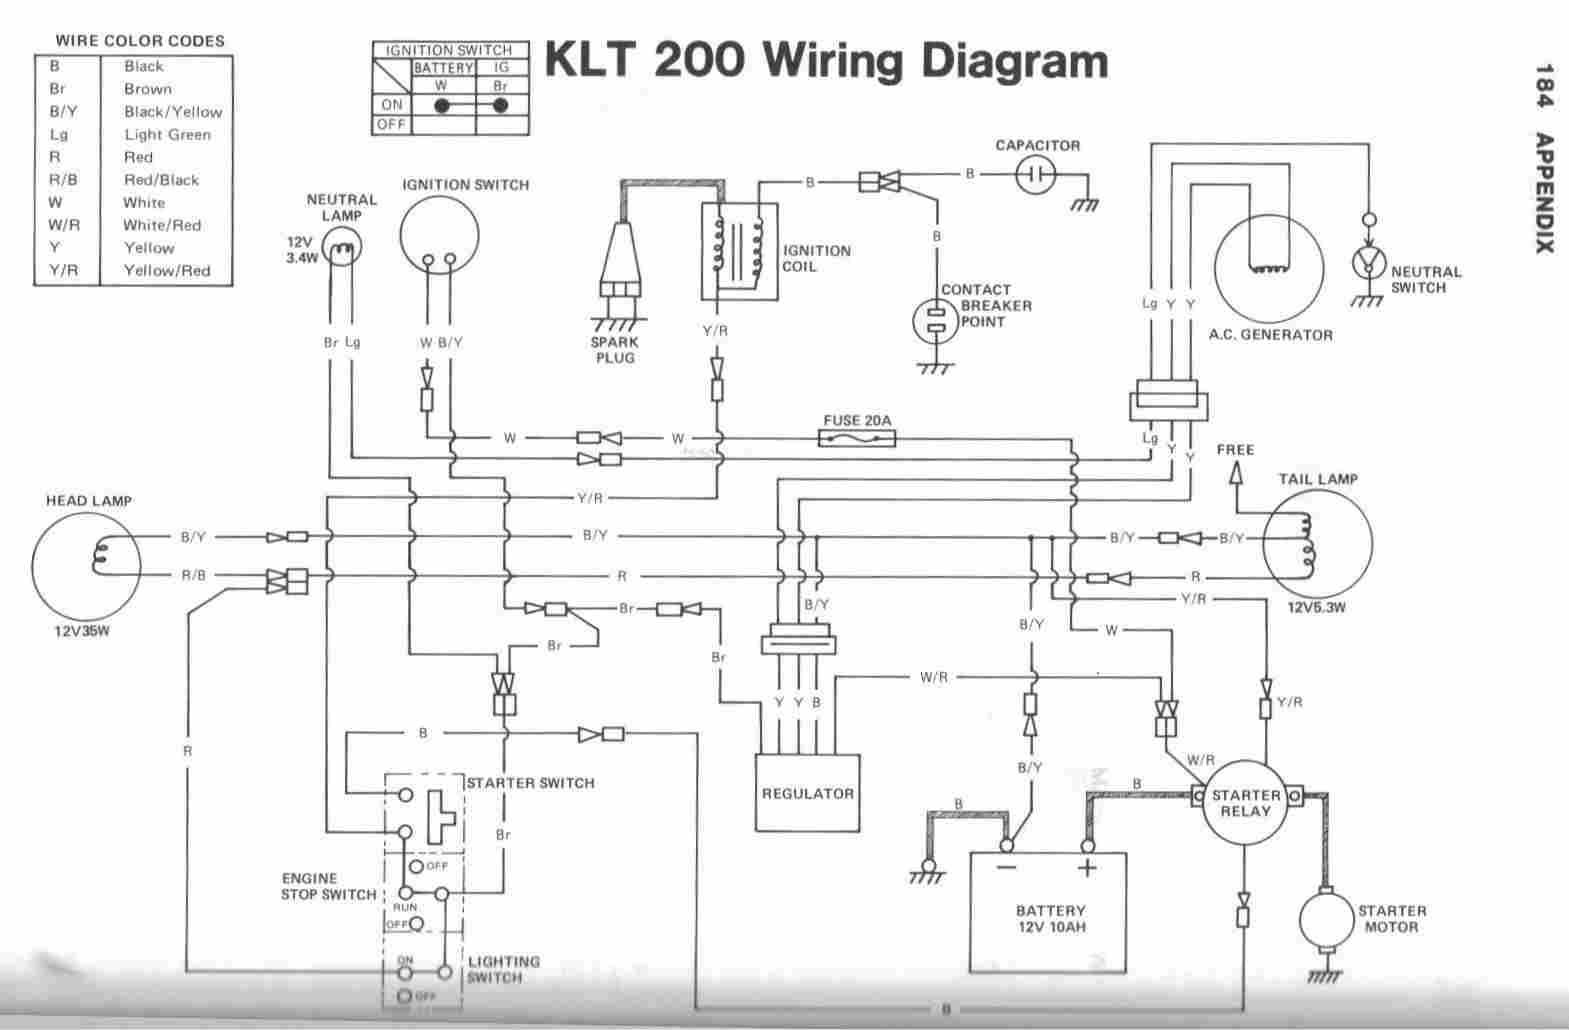 simple auto electrical wiring diagram 2006 ford focus headlight residential diagrams pdf easy routing